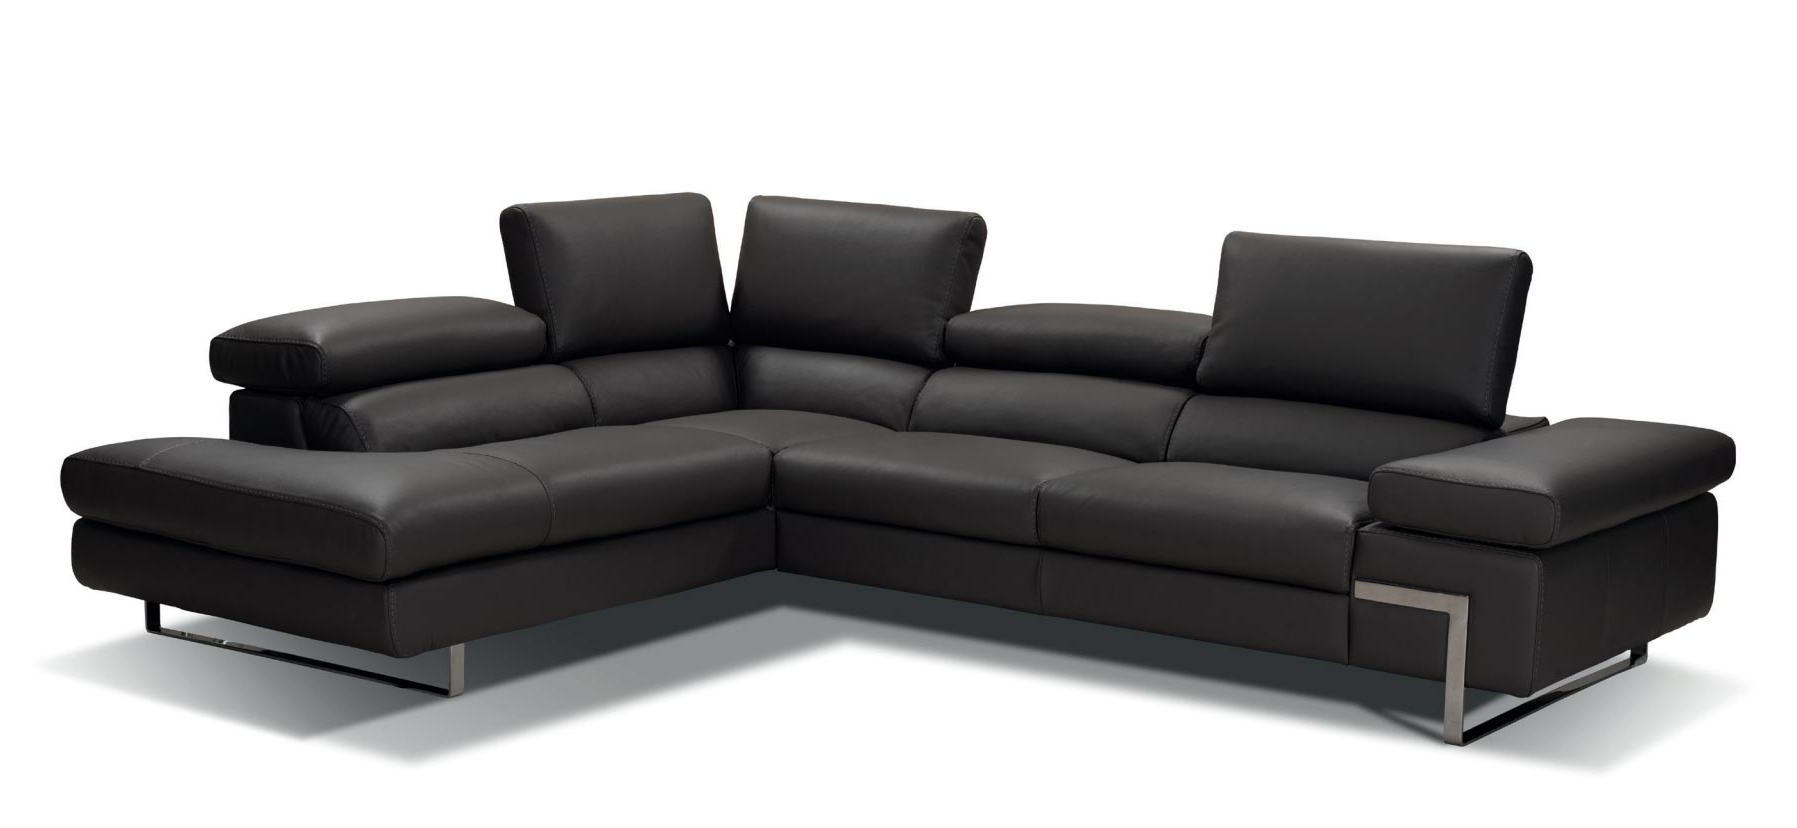 Queens Ny Sectional Sofas For Favorite Canal Furniture (View 11 of 20)